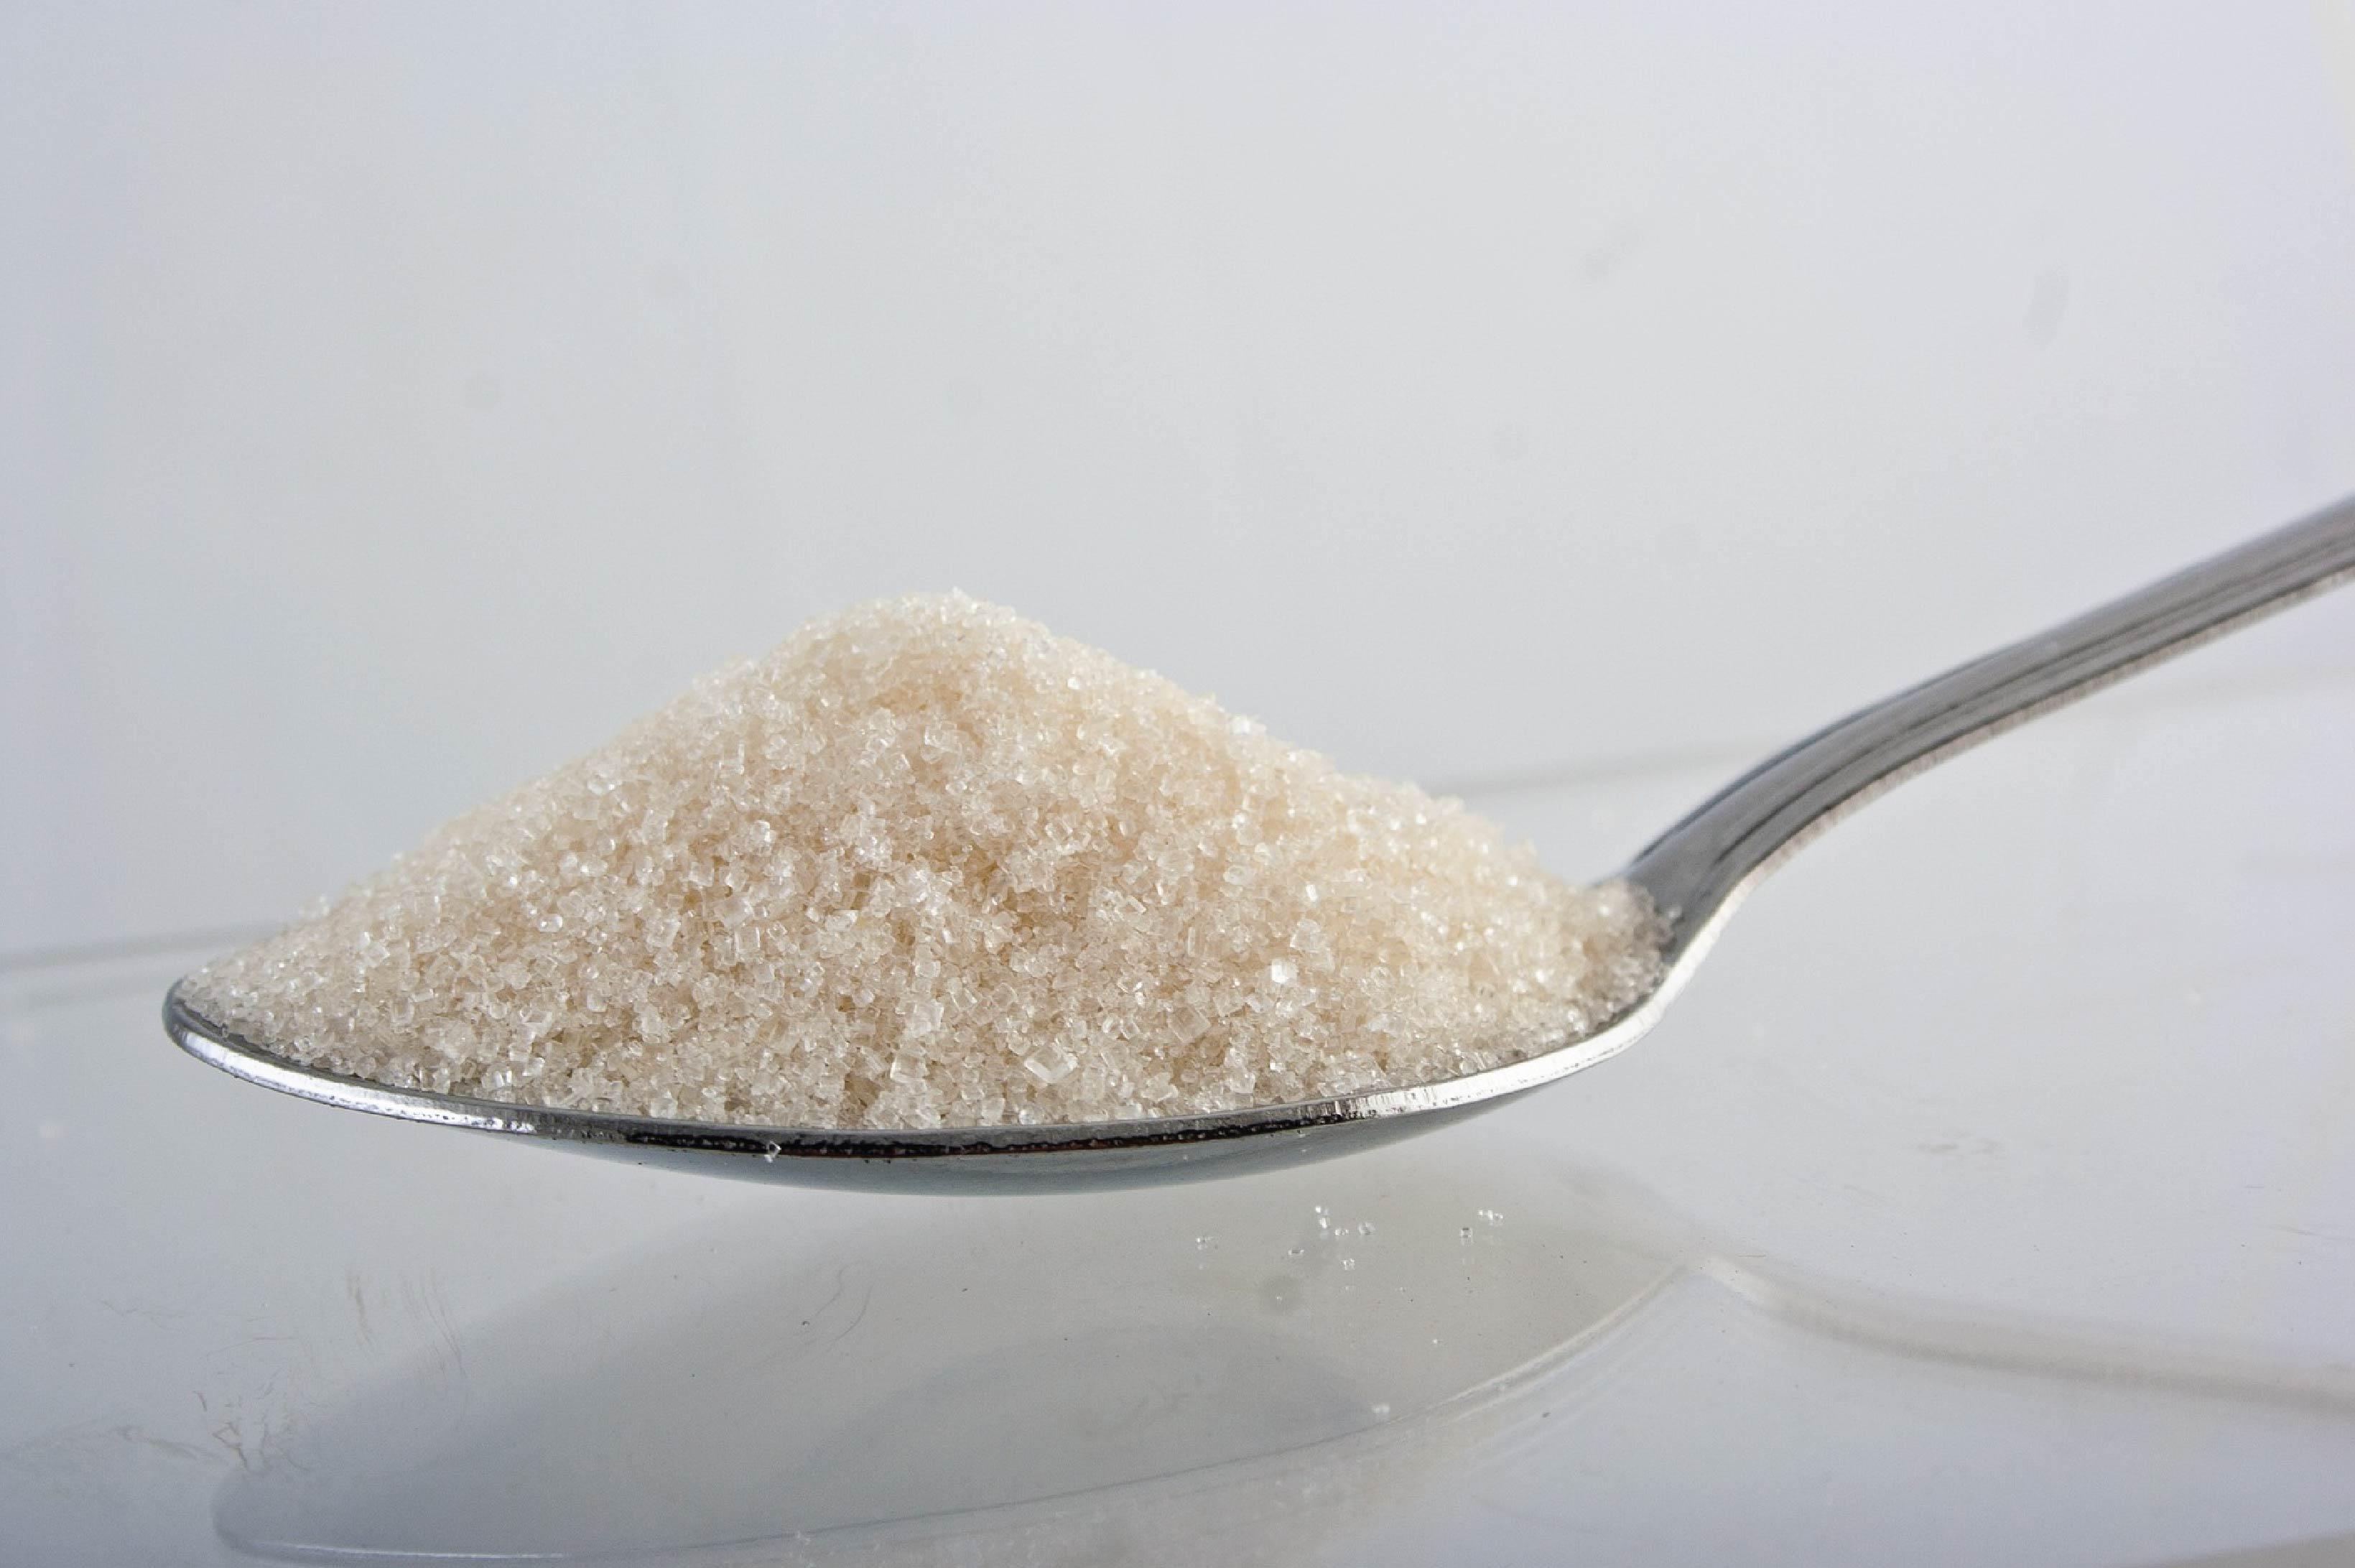 A sugar substitute-use or harm